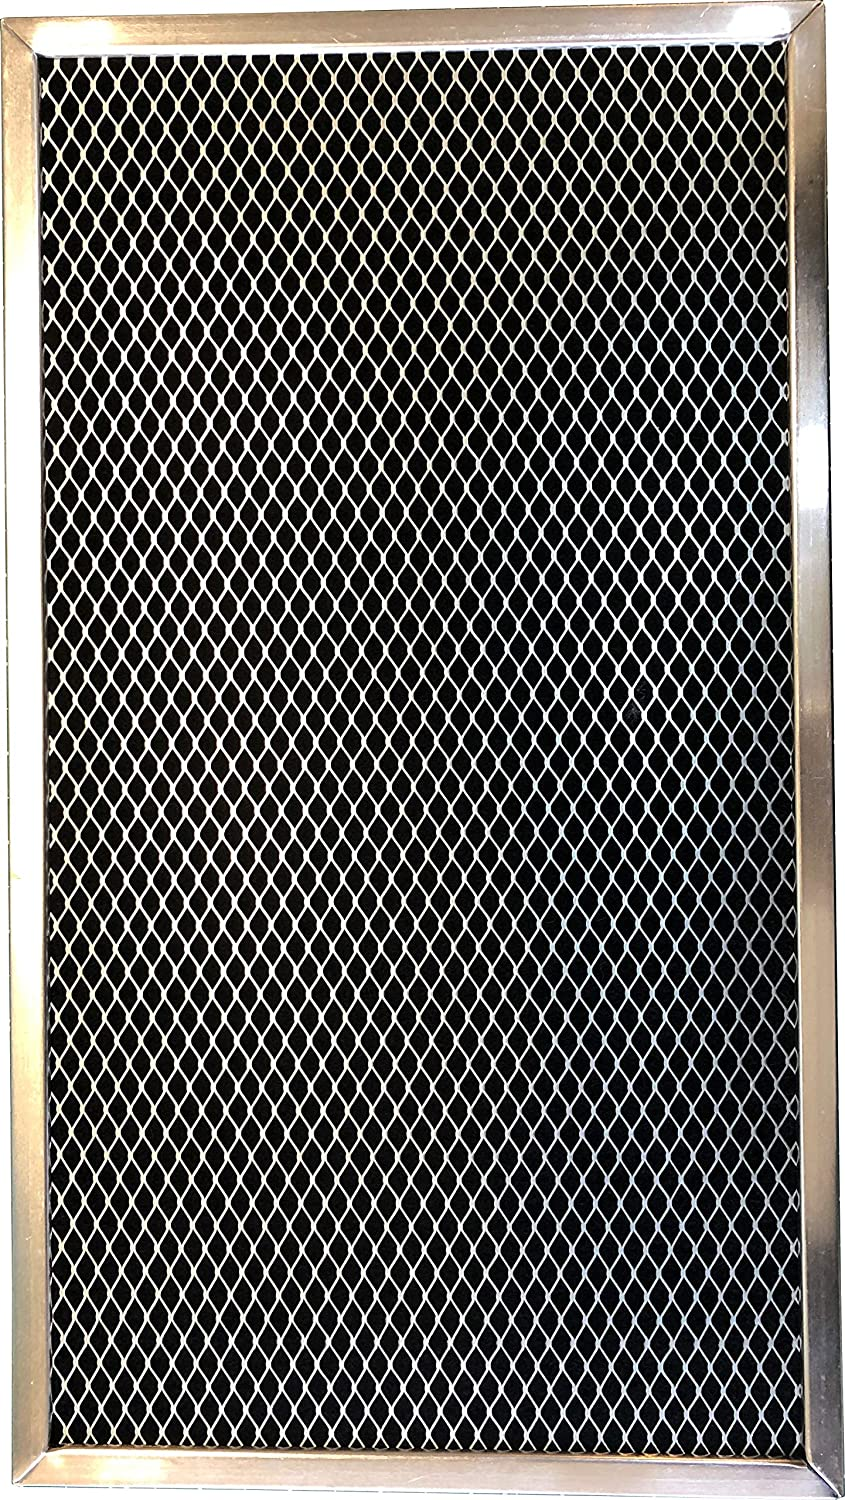 Carbon Range Filter Compatible With GE WB02X2266, GE WB02X2290, GE WB02X2892, GE WB02X9761, GE WB2X2290, GE WB2X2892, GE WB2X9761, Whirlpool W10386873,C-6114;11-3/8x 17 x 3/8 (PT SS); 1 Pack